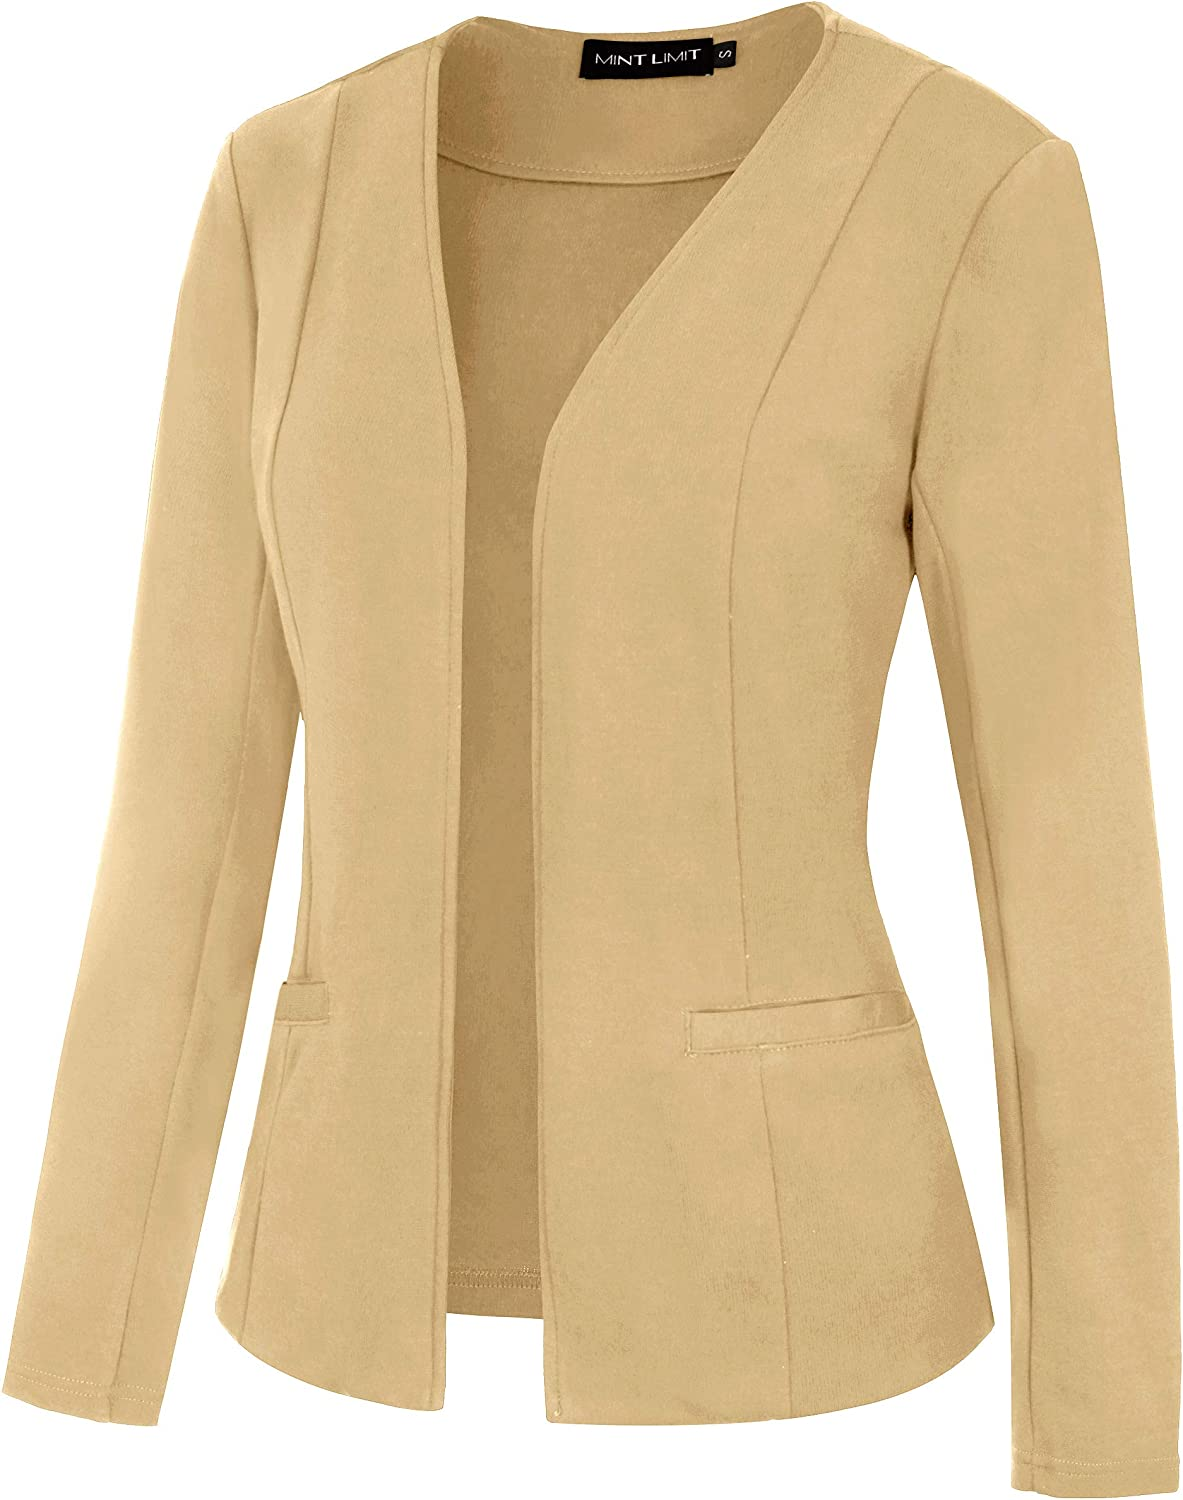 MINTLIMIT Womens Casual Long Sleeve Cardigan Open Front Blazer Collarless Work Suit Office Jacket with Pockets